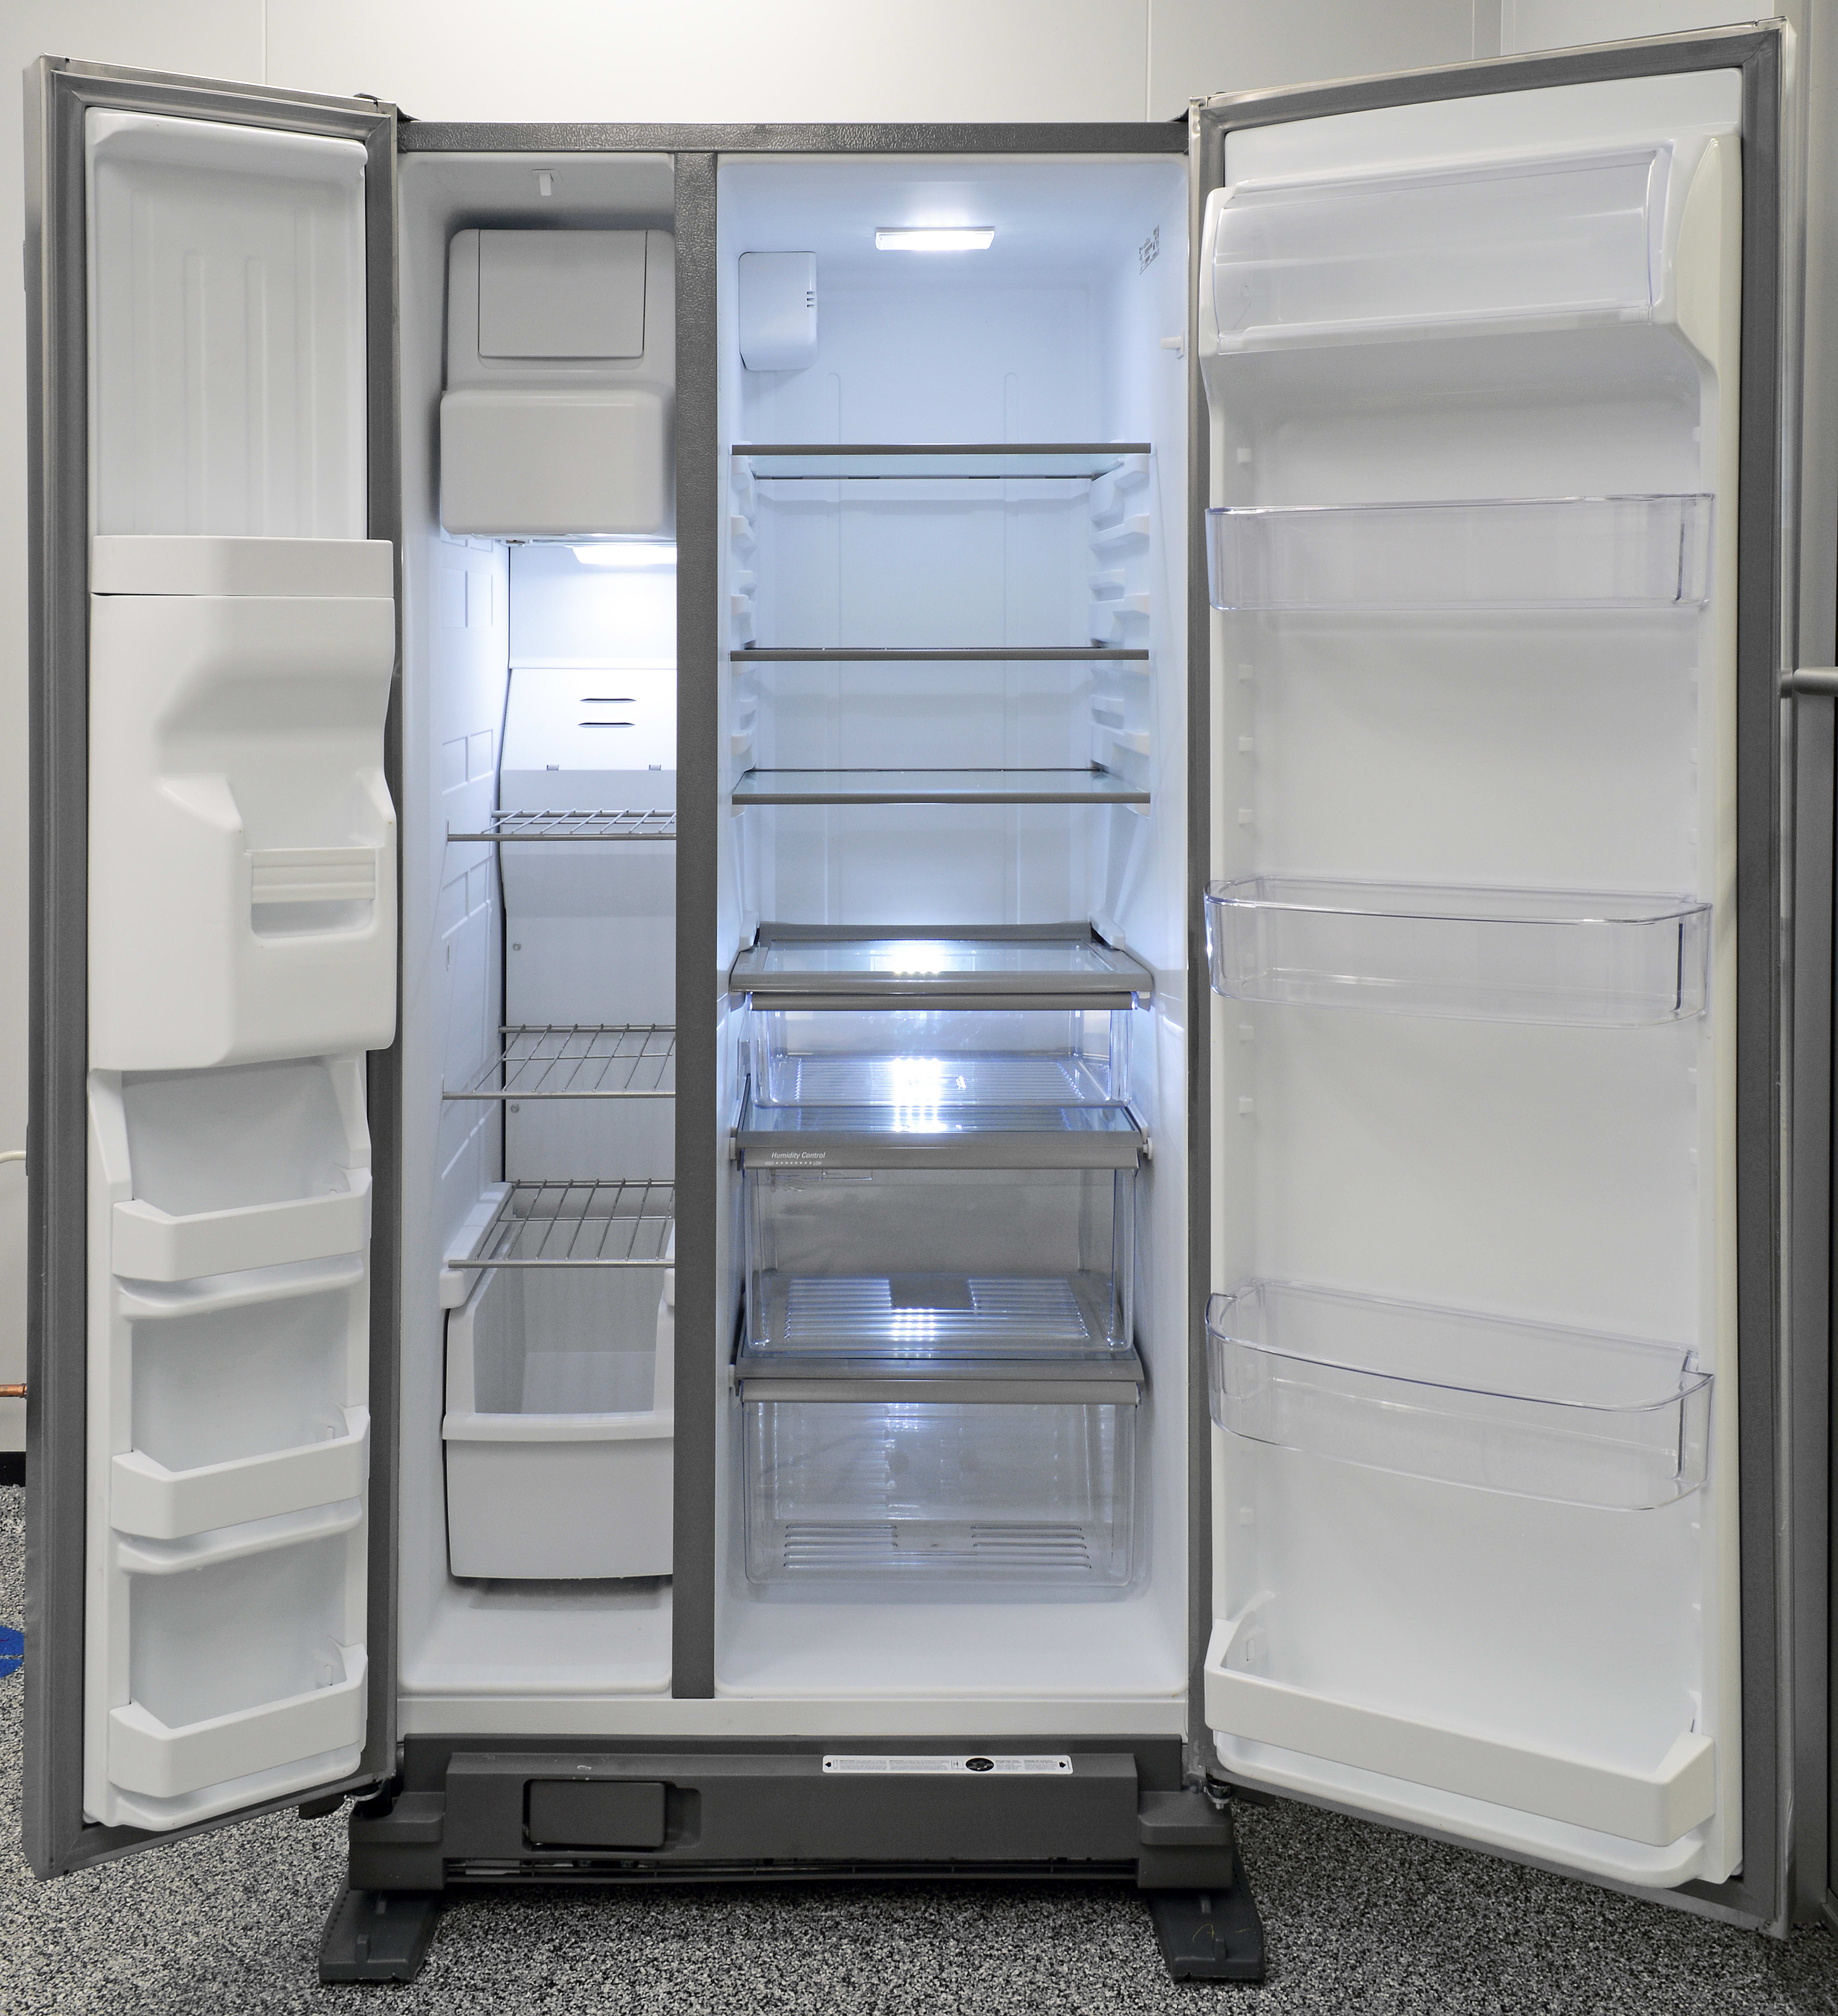 Lots of adjustable shelves with silvery trim give the Maytag MSF21D4MDM a high-end look.